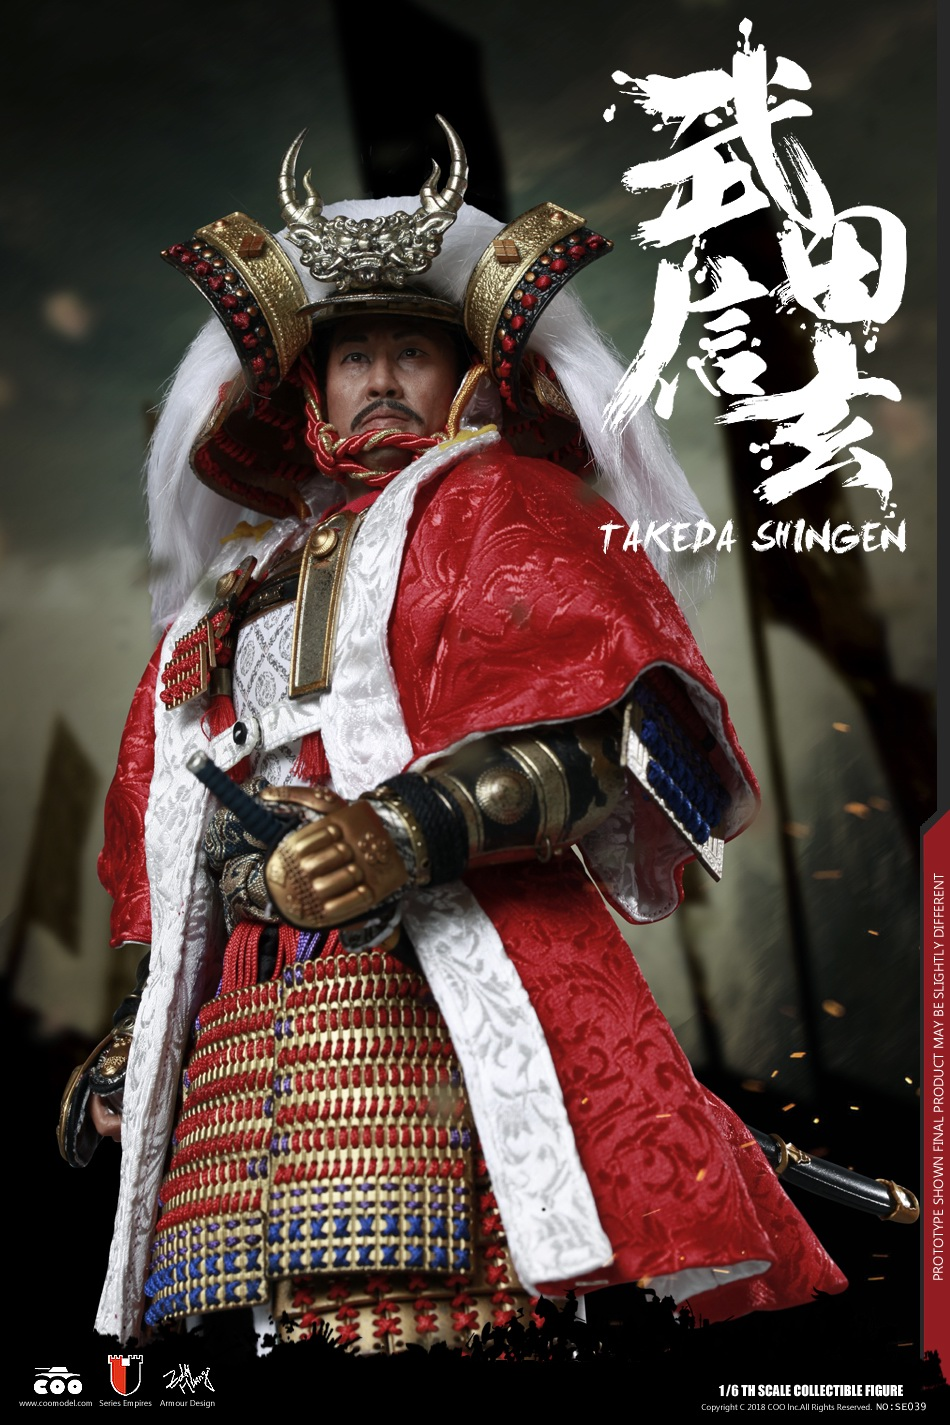 NEW PRODUCT: COOMODEL New: Empire Series Takeda Shingen 183749nluun1czbf4xyusc